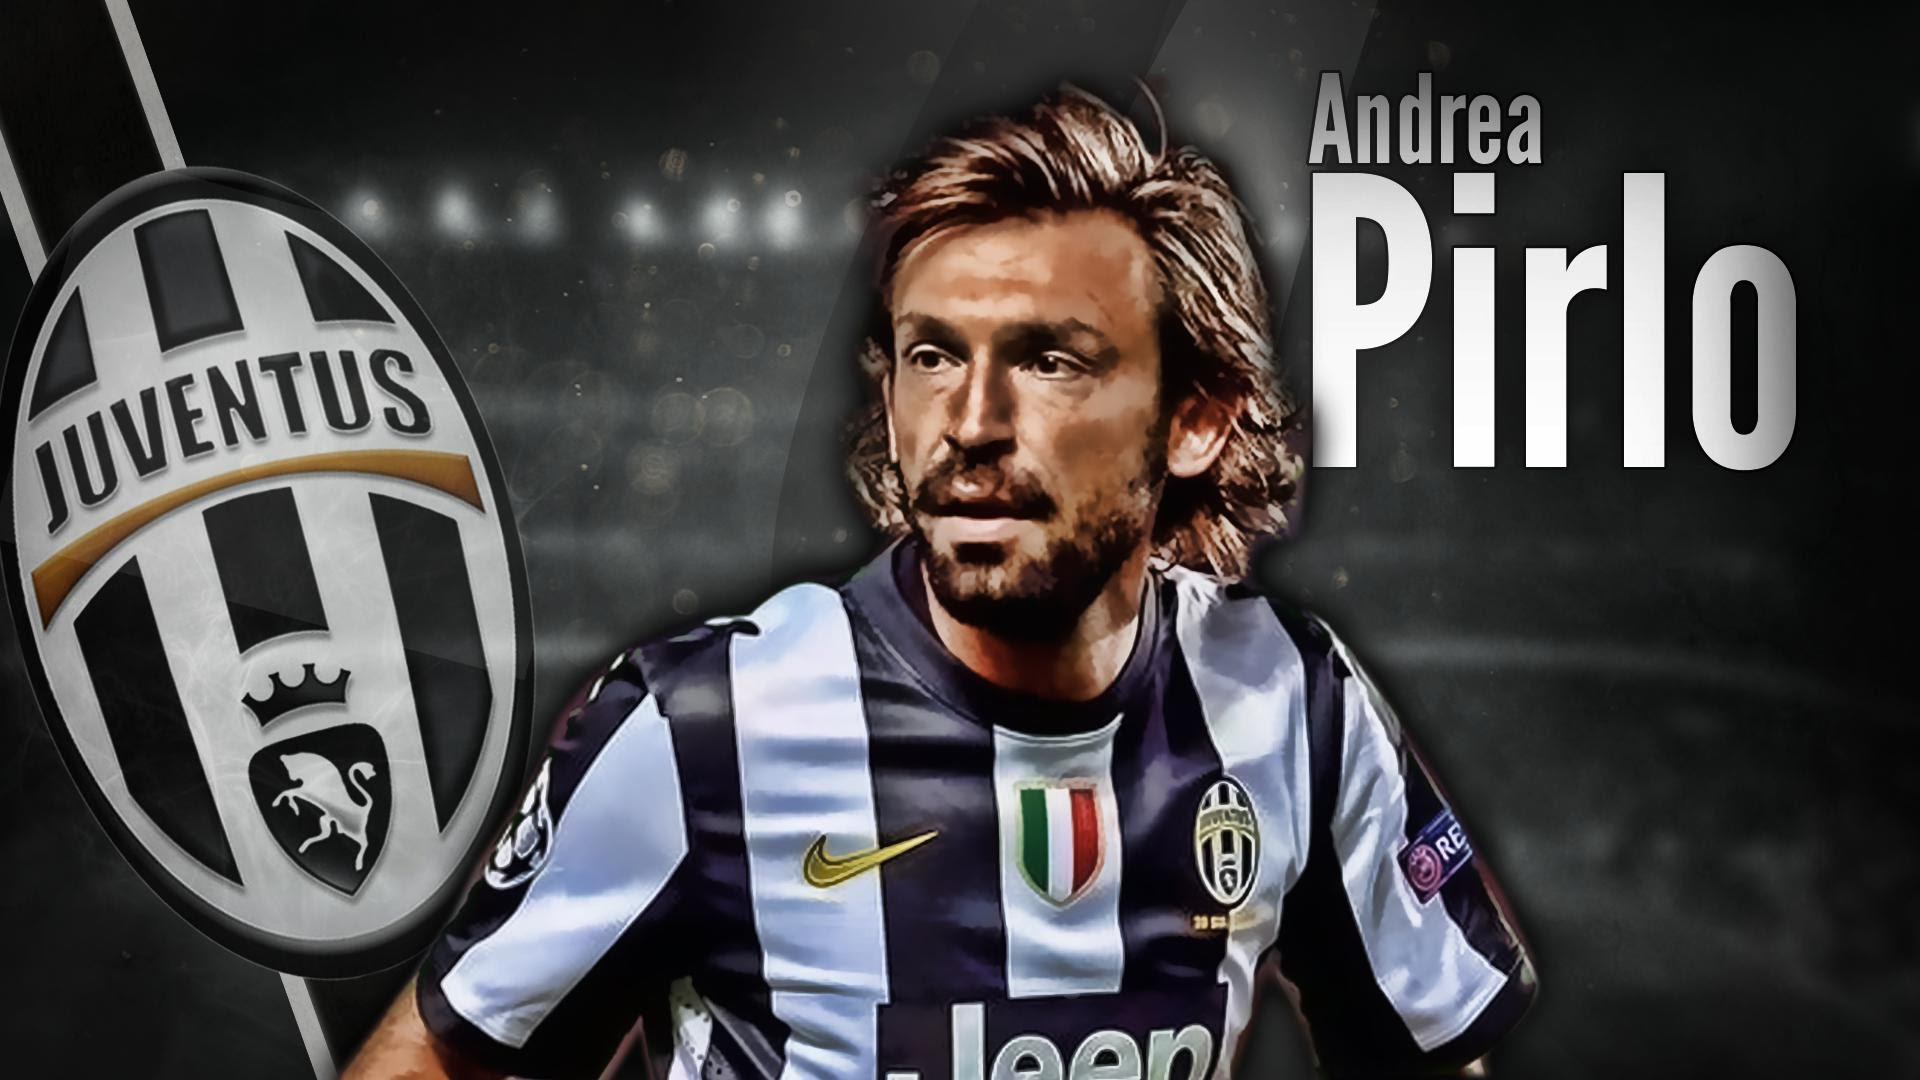 1920x1080 - Andrea Pirlo Wallpapers 6